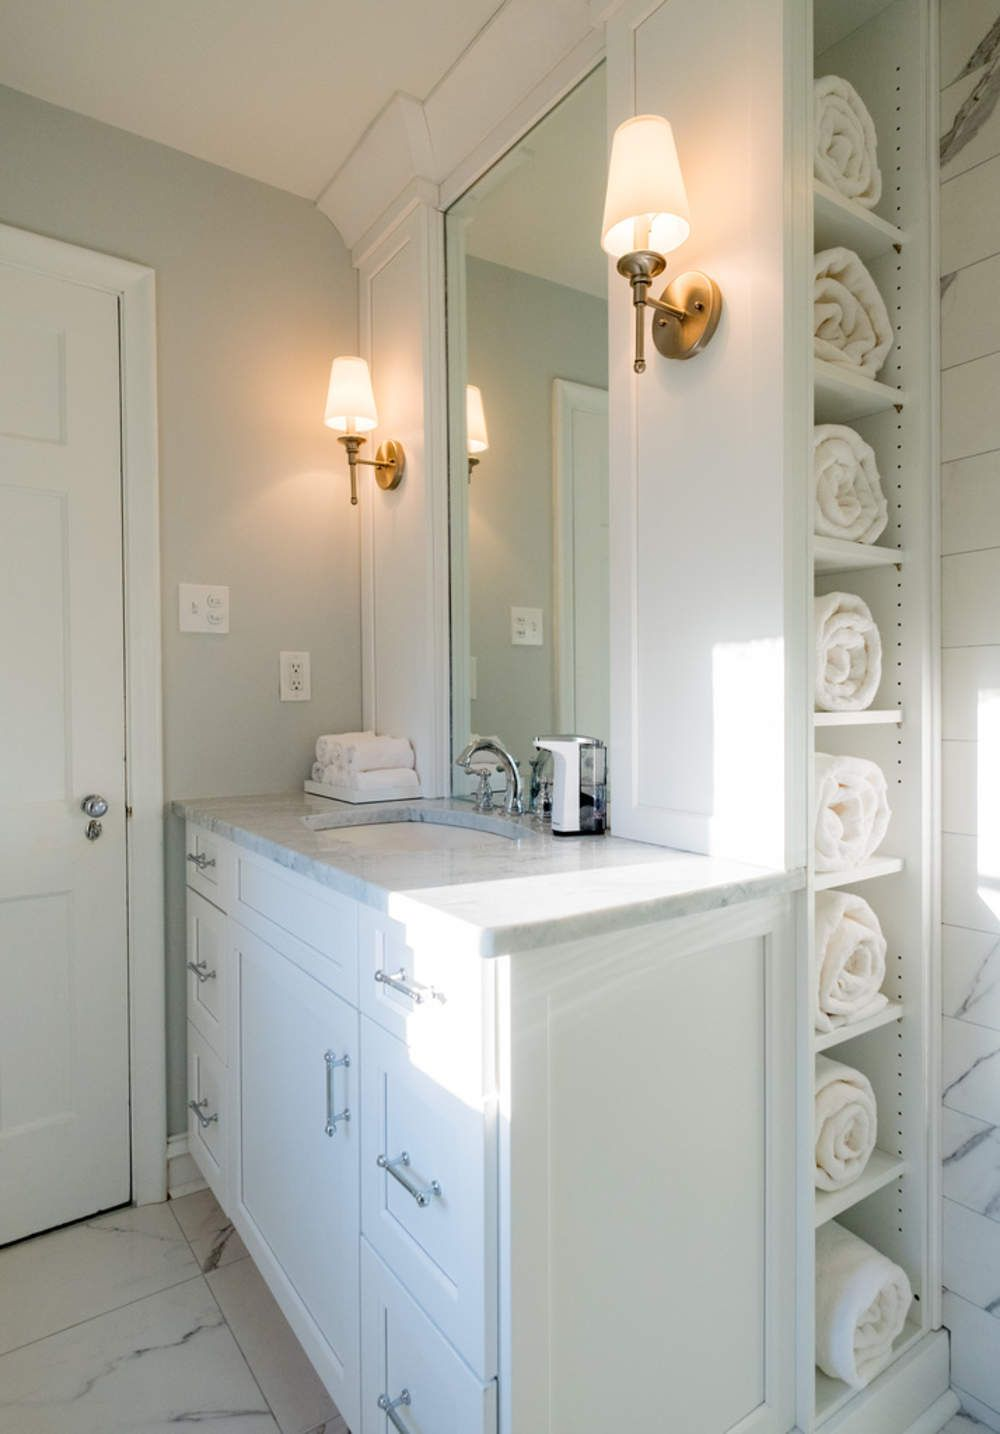 Transitional Bathroom Remodel Richmond, VA | Bathroom Tile ... on bathroom remodel indianapolis, bathroom remodel toledo, bathroom remodel pittsburgh, bathroom remodel orlando, bathroom remodel sacramento, bathroom remodel denver,